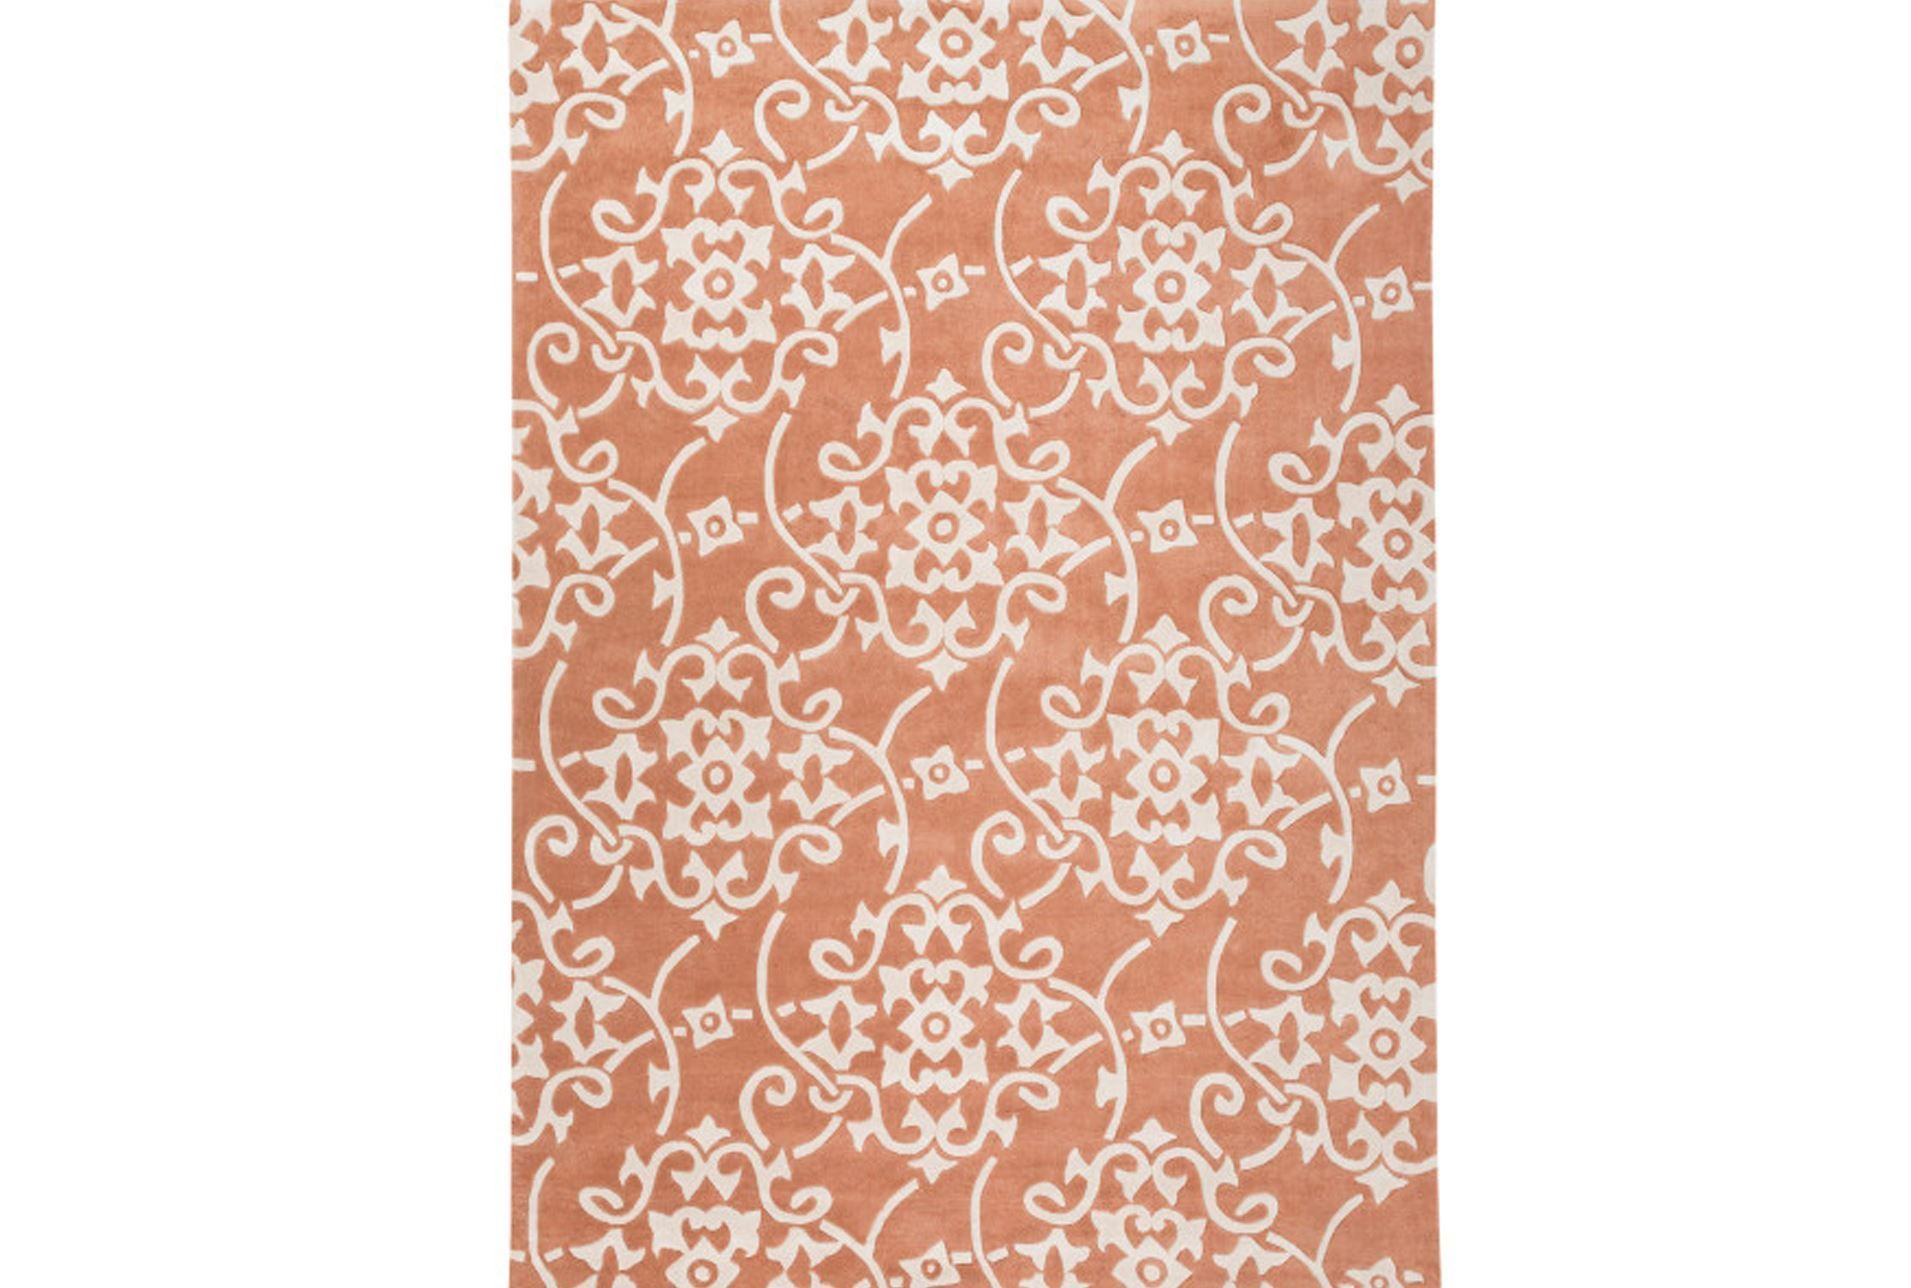 96X132 RugColleen Rust Rugs, Large rugs, Home accents